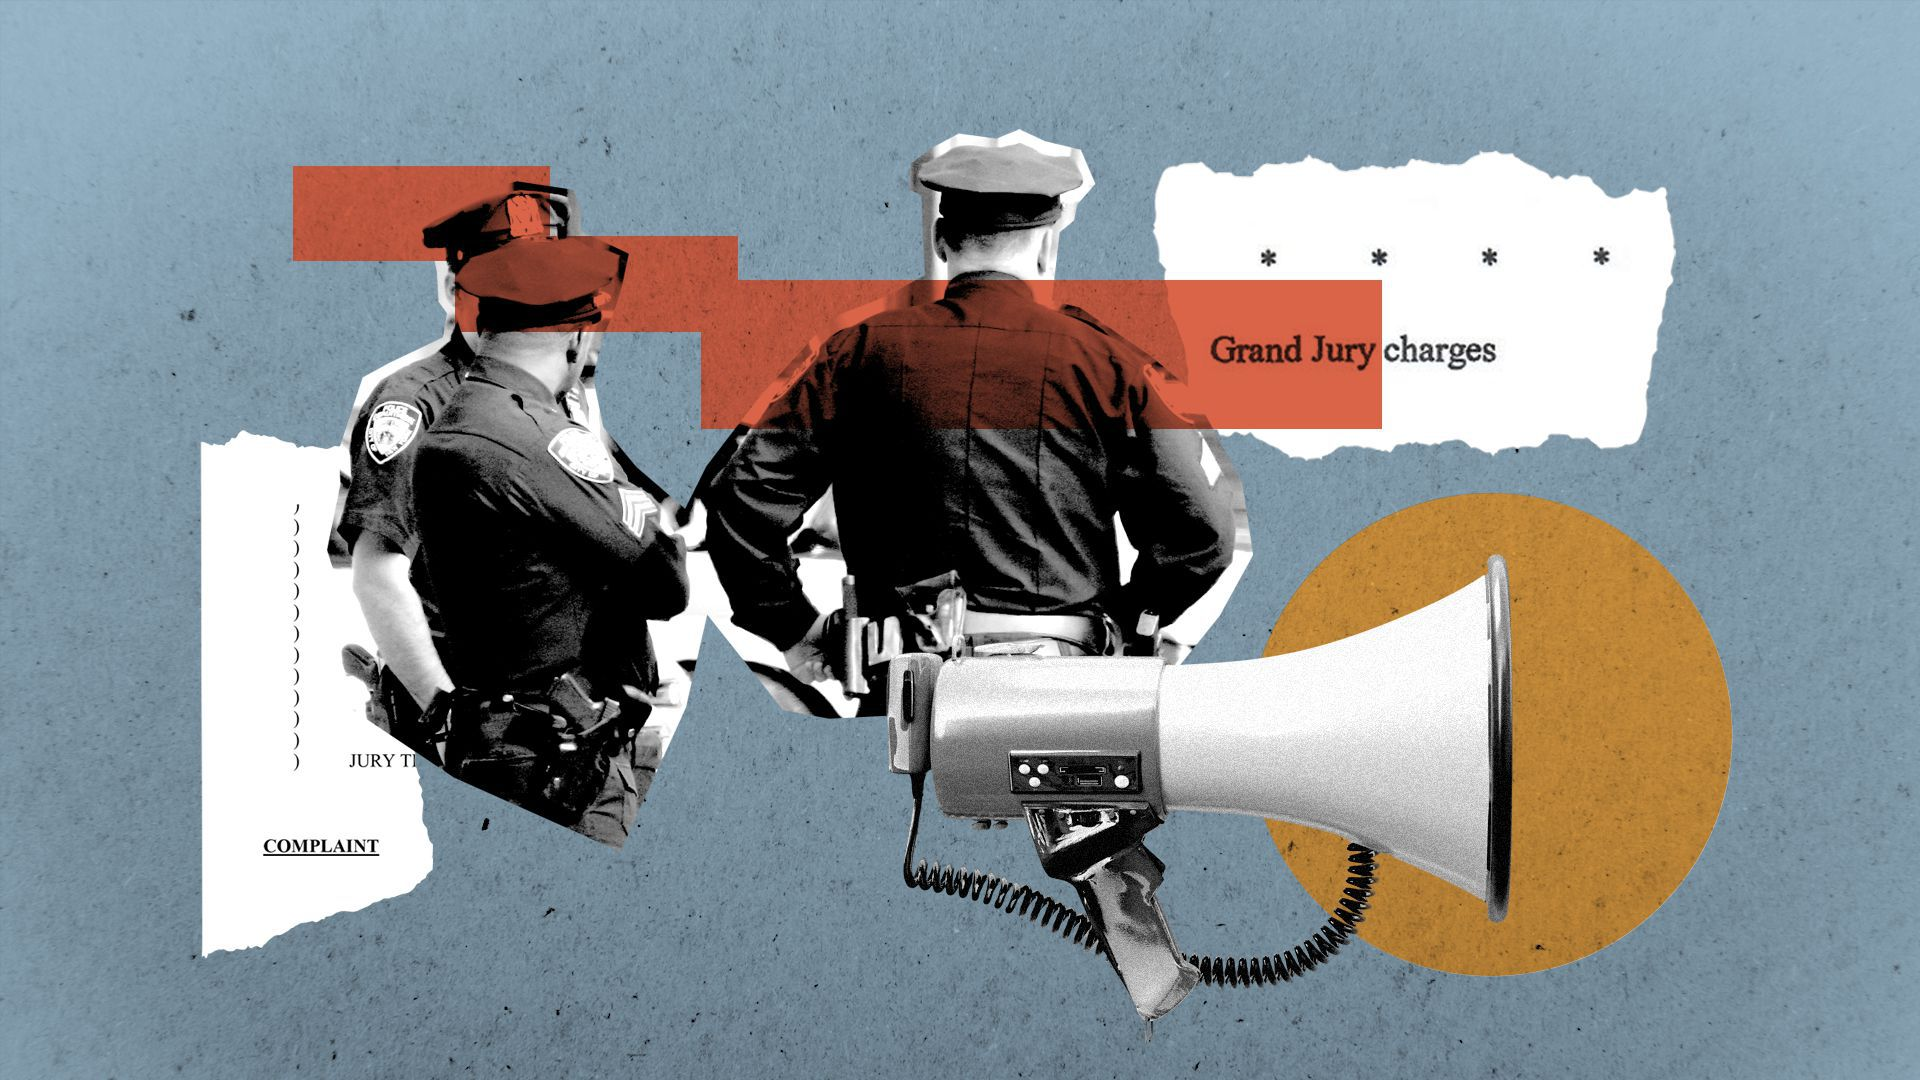 Illustration of a collage featuring police officers, a megaphone, and torn pieces of legal documents.